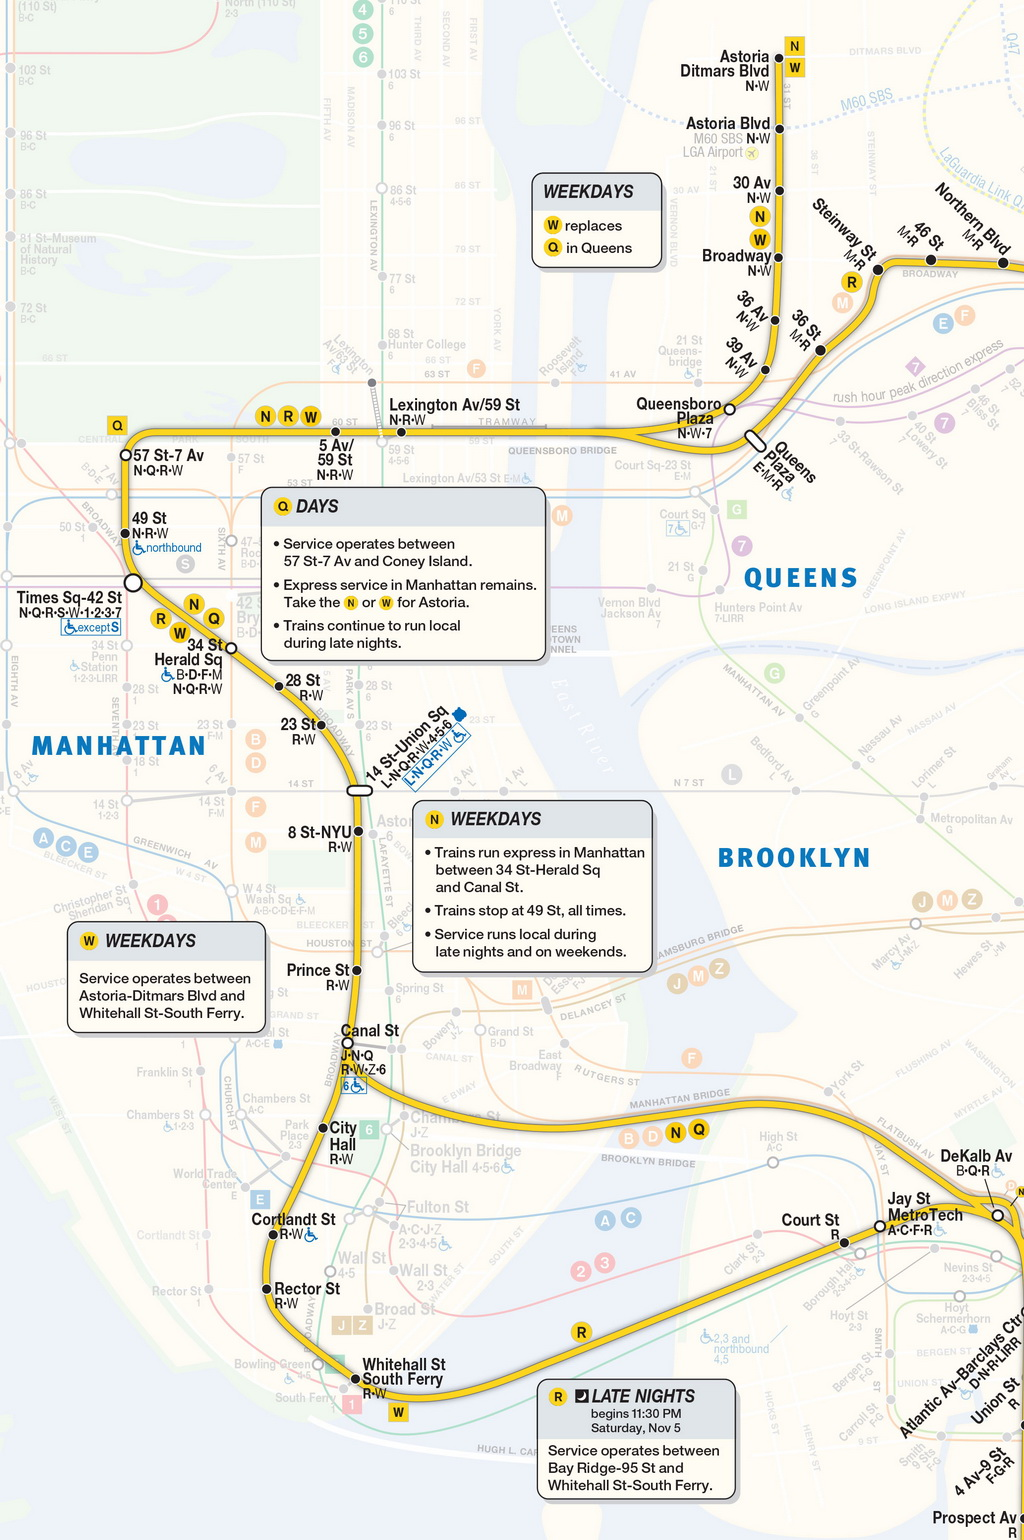 Queens And Manhatan Subway Map.Mta Info Nqrw Guide